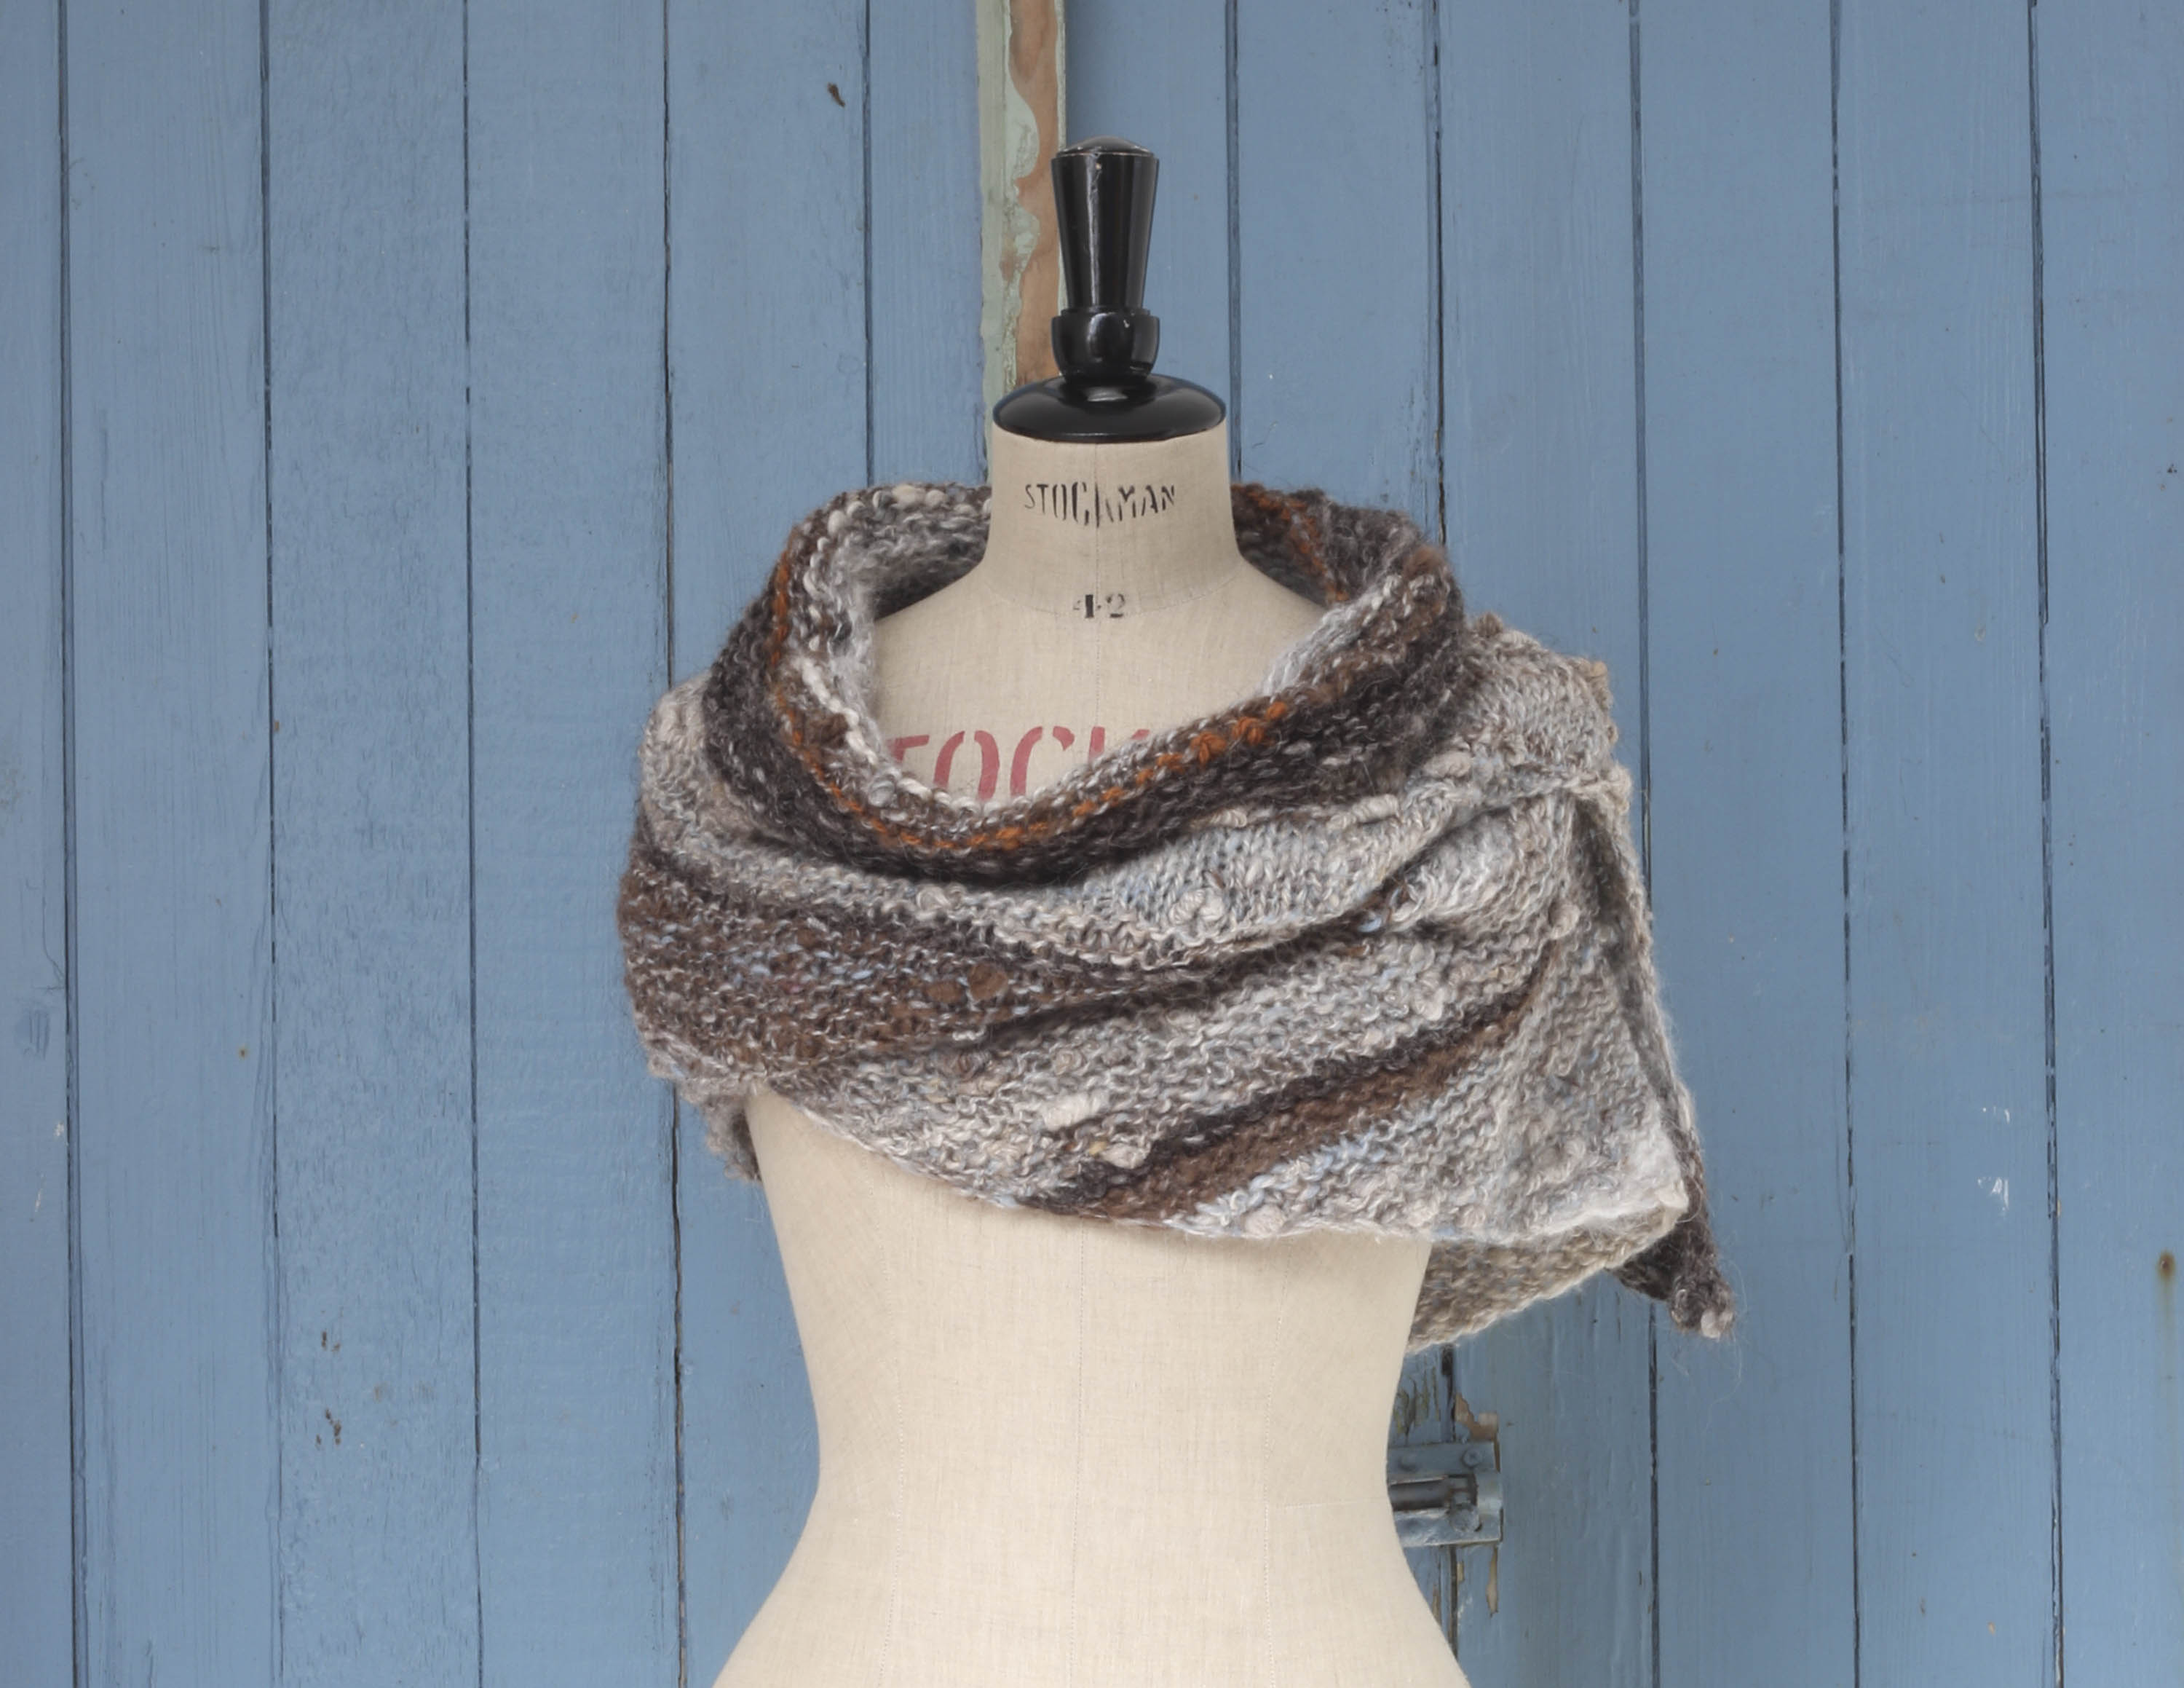 Small shawl knitted in handspun Icleandic yarn in natural colours, photographed on a vintage mannequin against a light blue, panelled door.